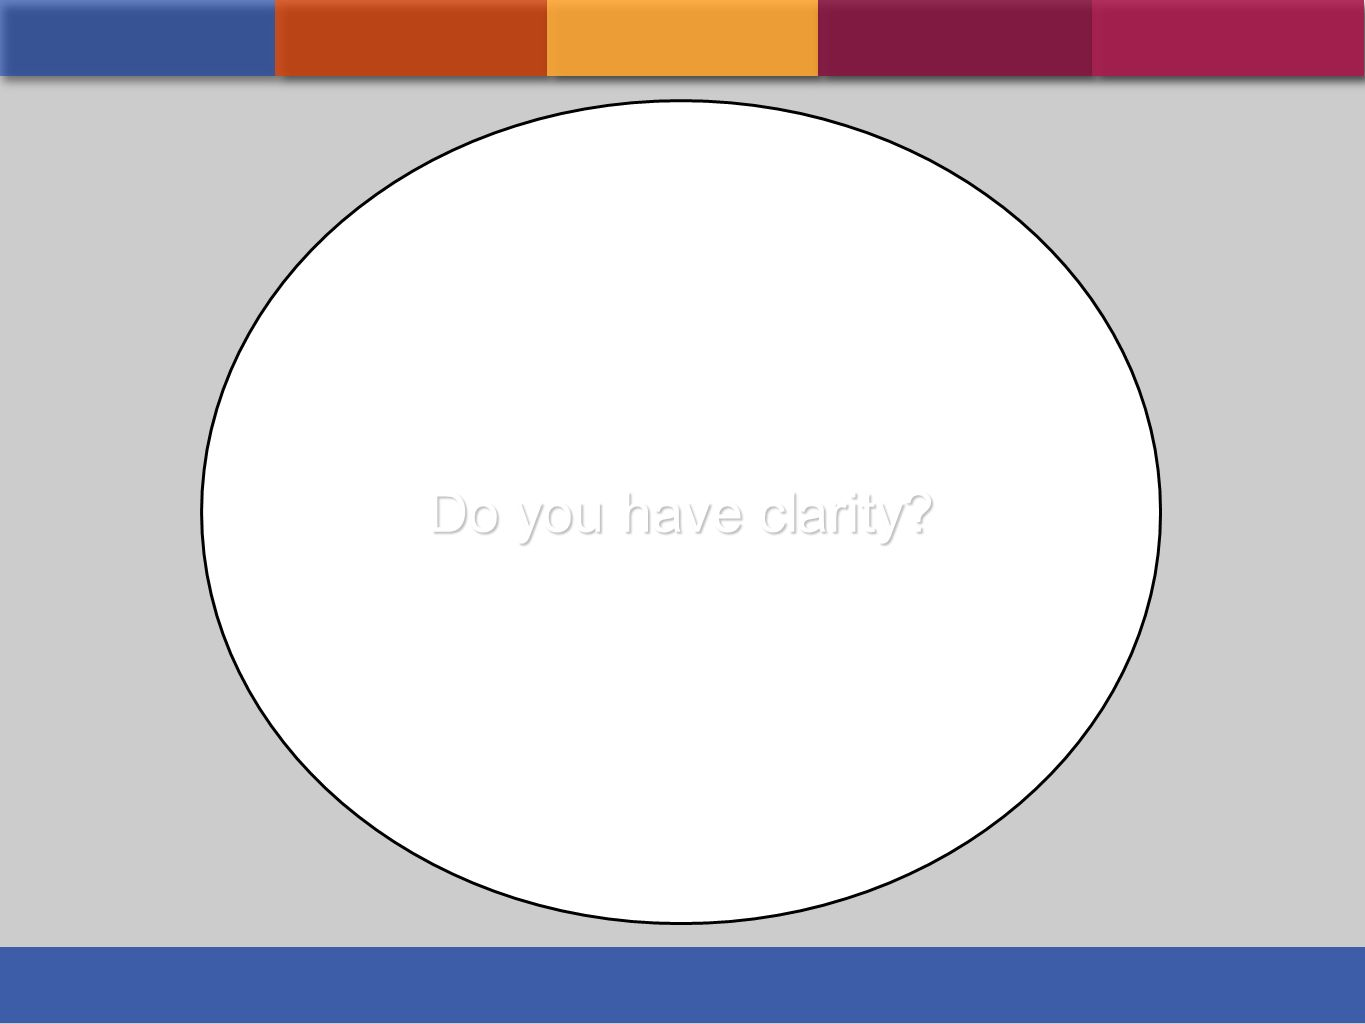 Do you have clarity